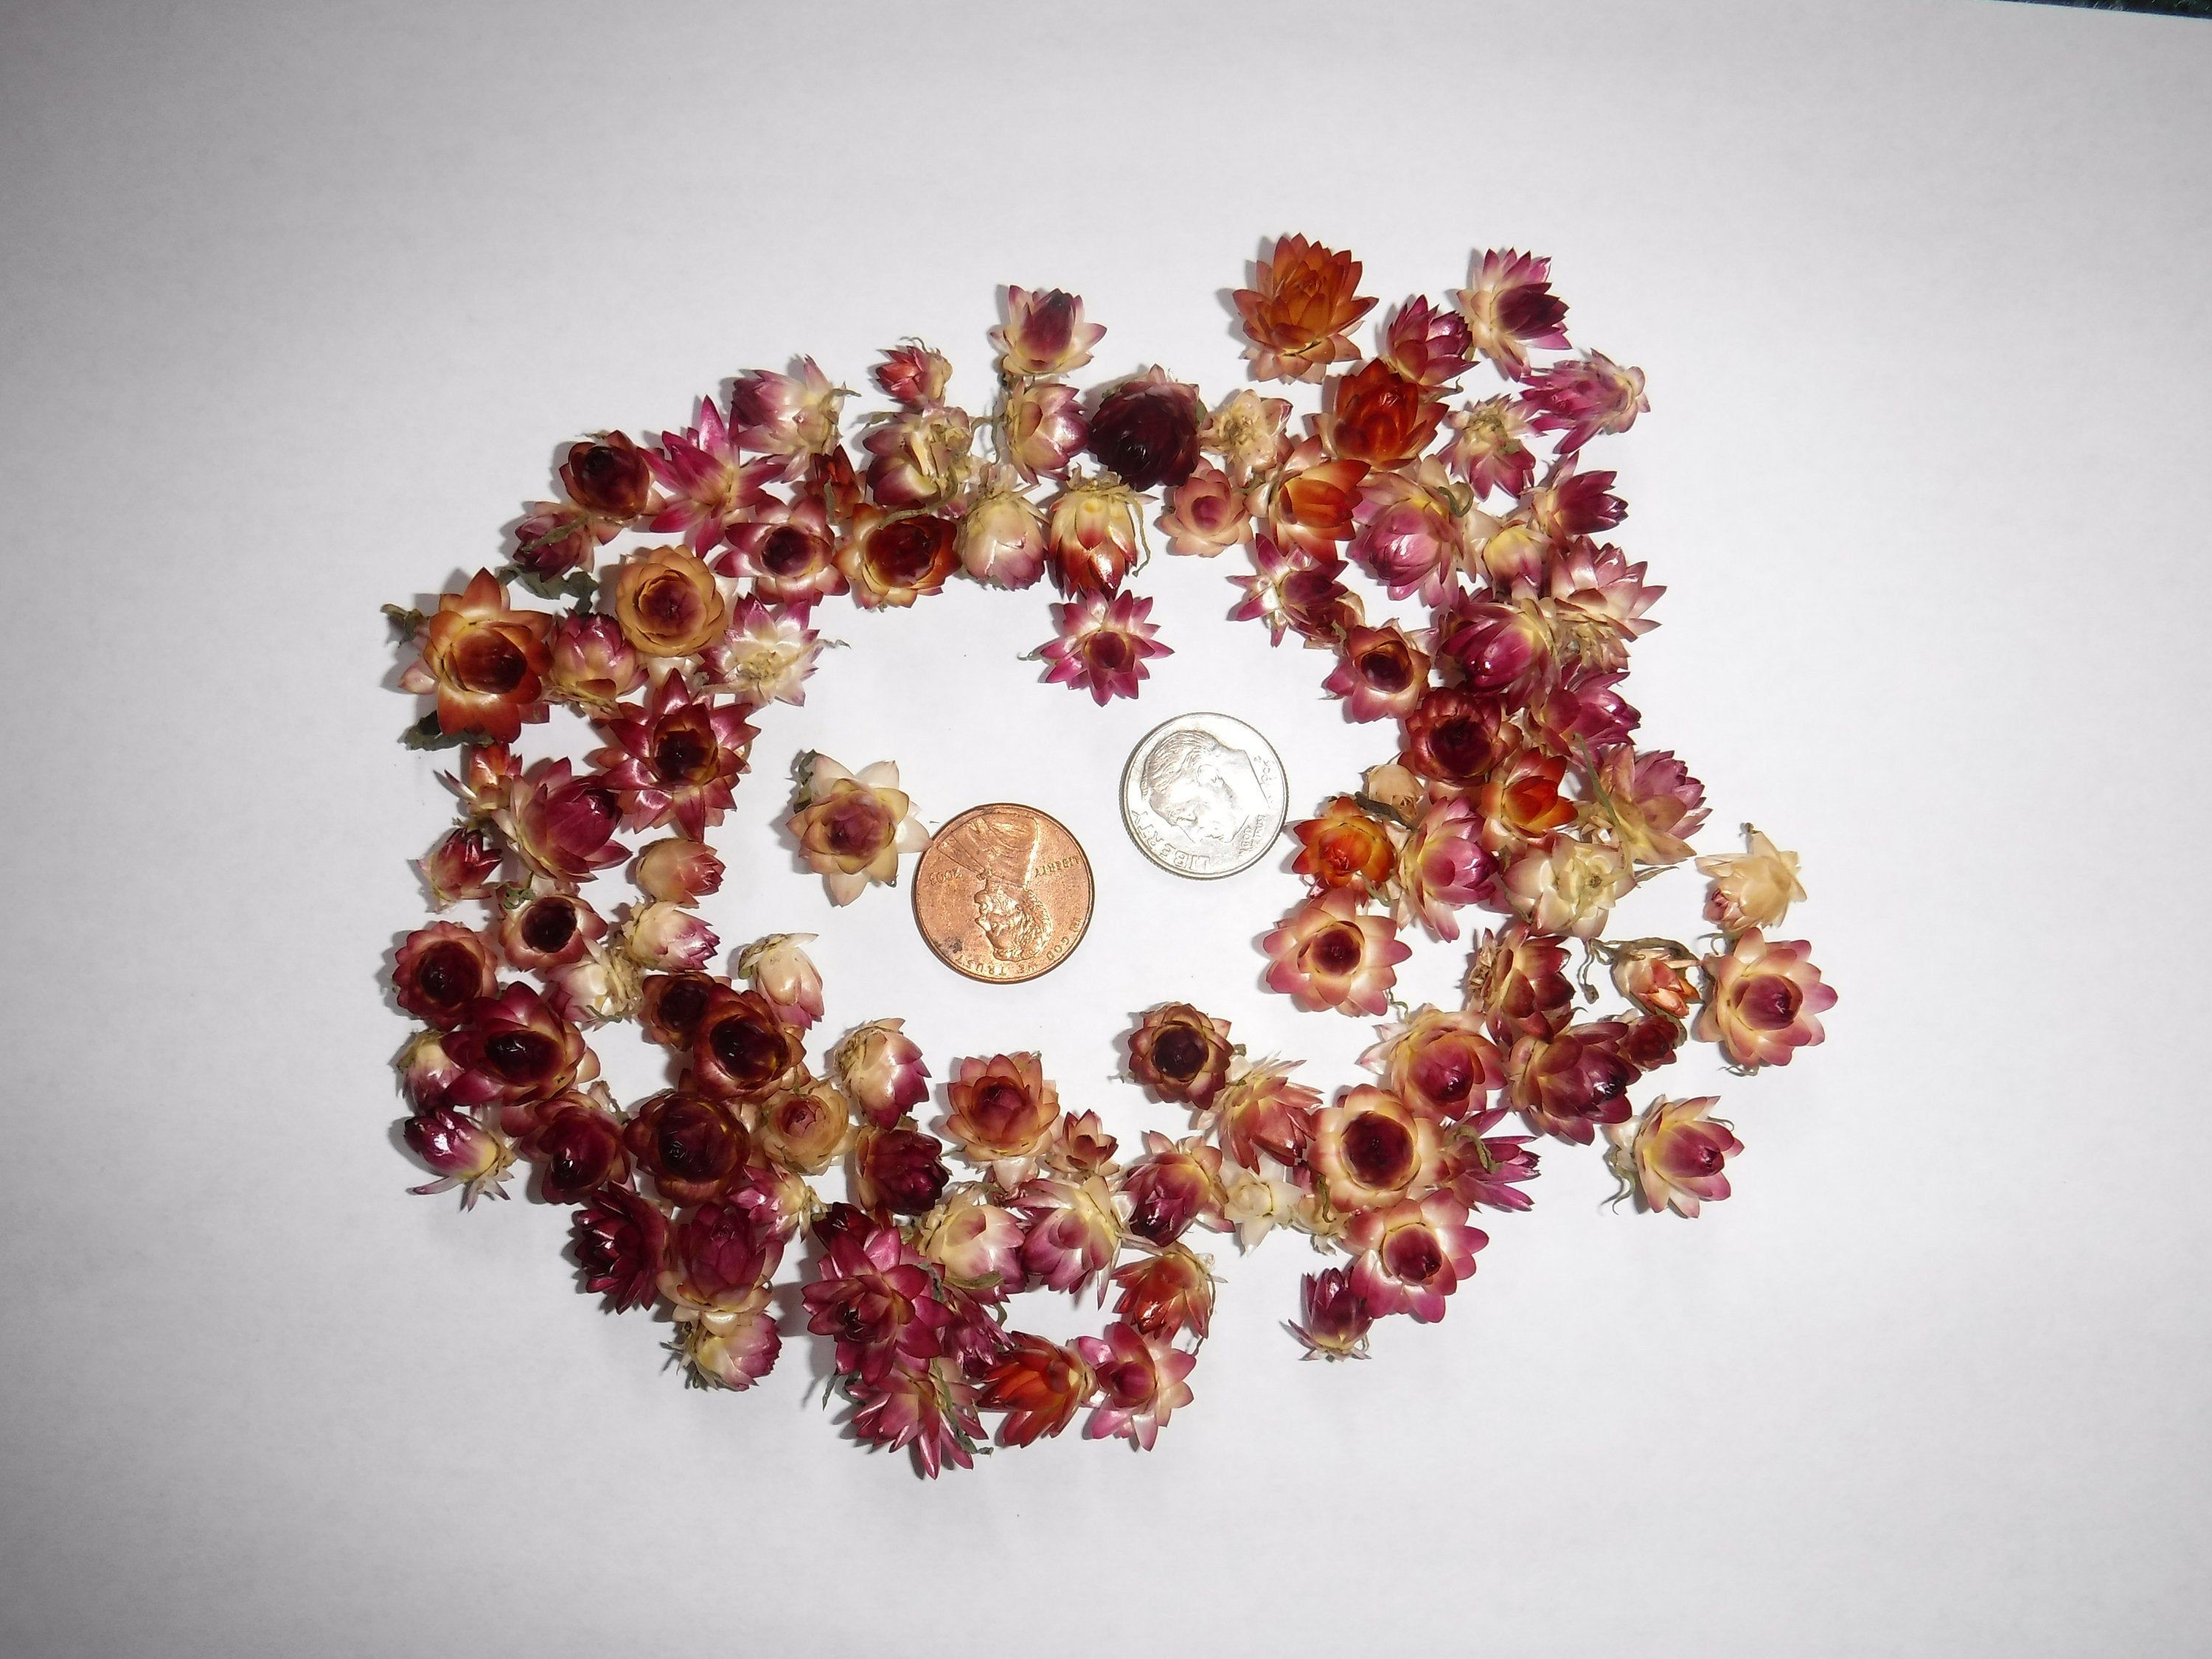 Dried Flowers for Jewelry Small Bouquet Dried Flowers for Candles Small Dried Flowers for Resin Small Dried Flower Tiny Dried Flowers